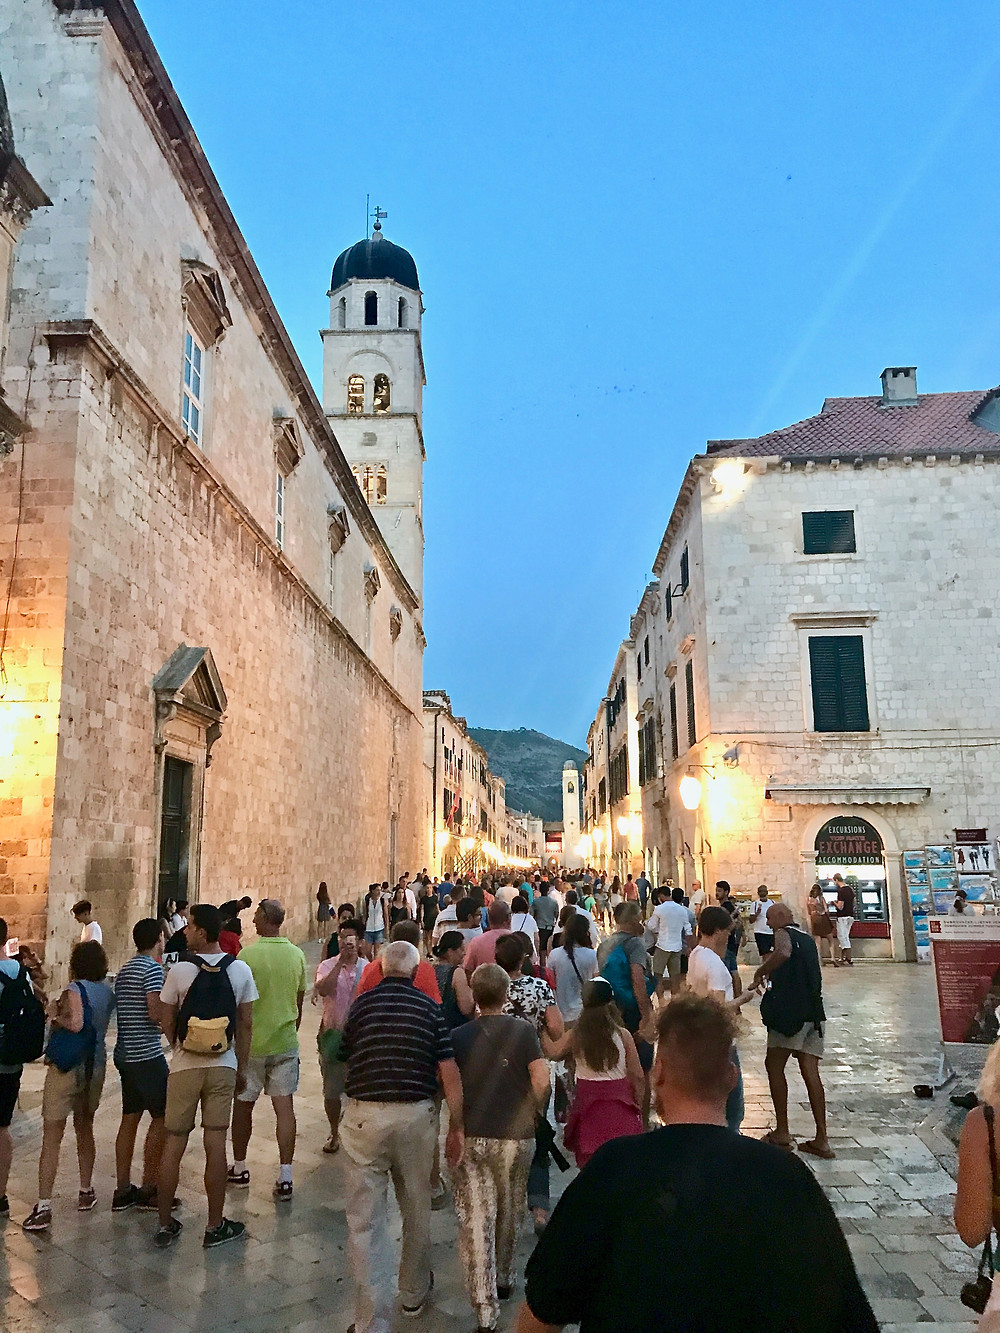 Even at night after the cruise ships have left, Dubrovnik is packed with tourists